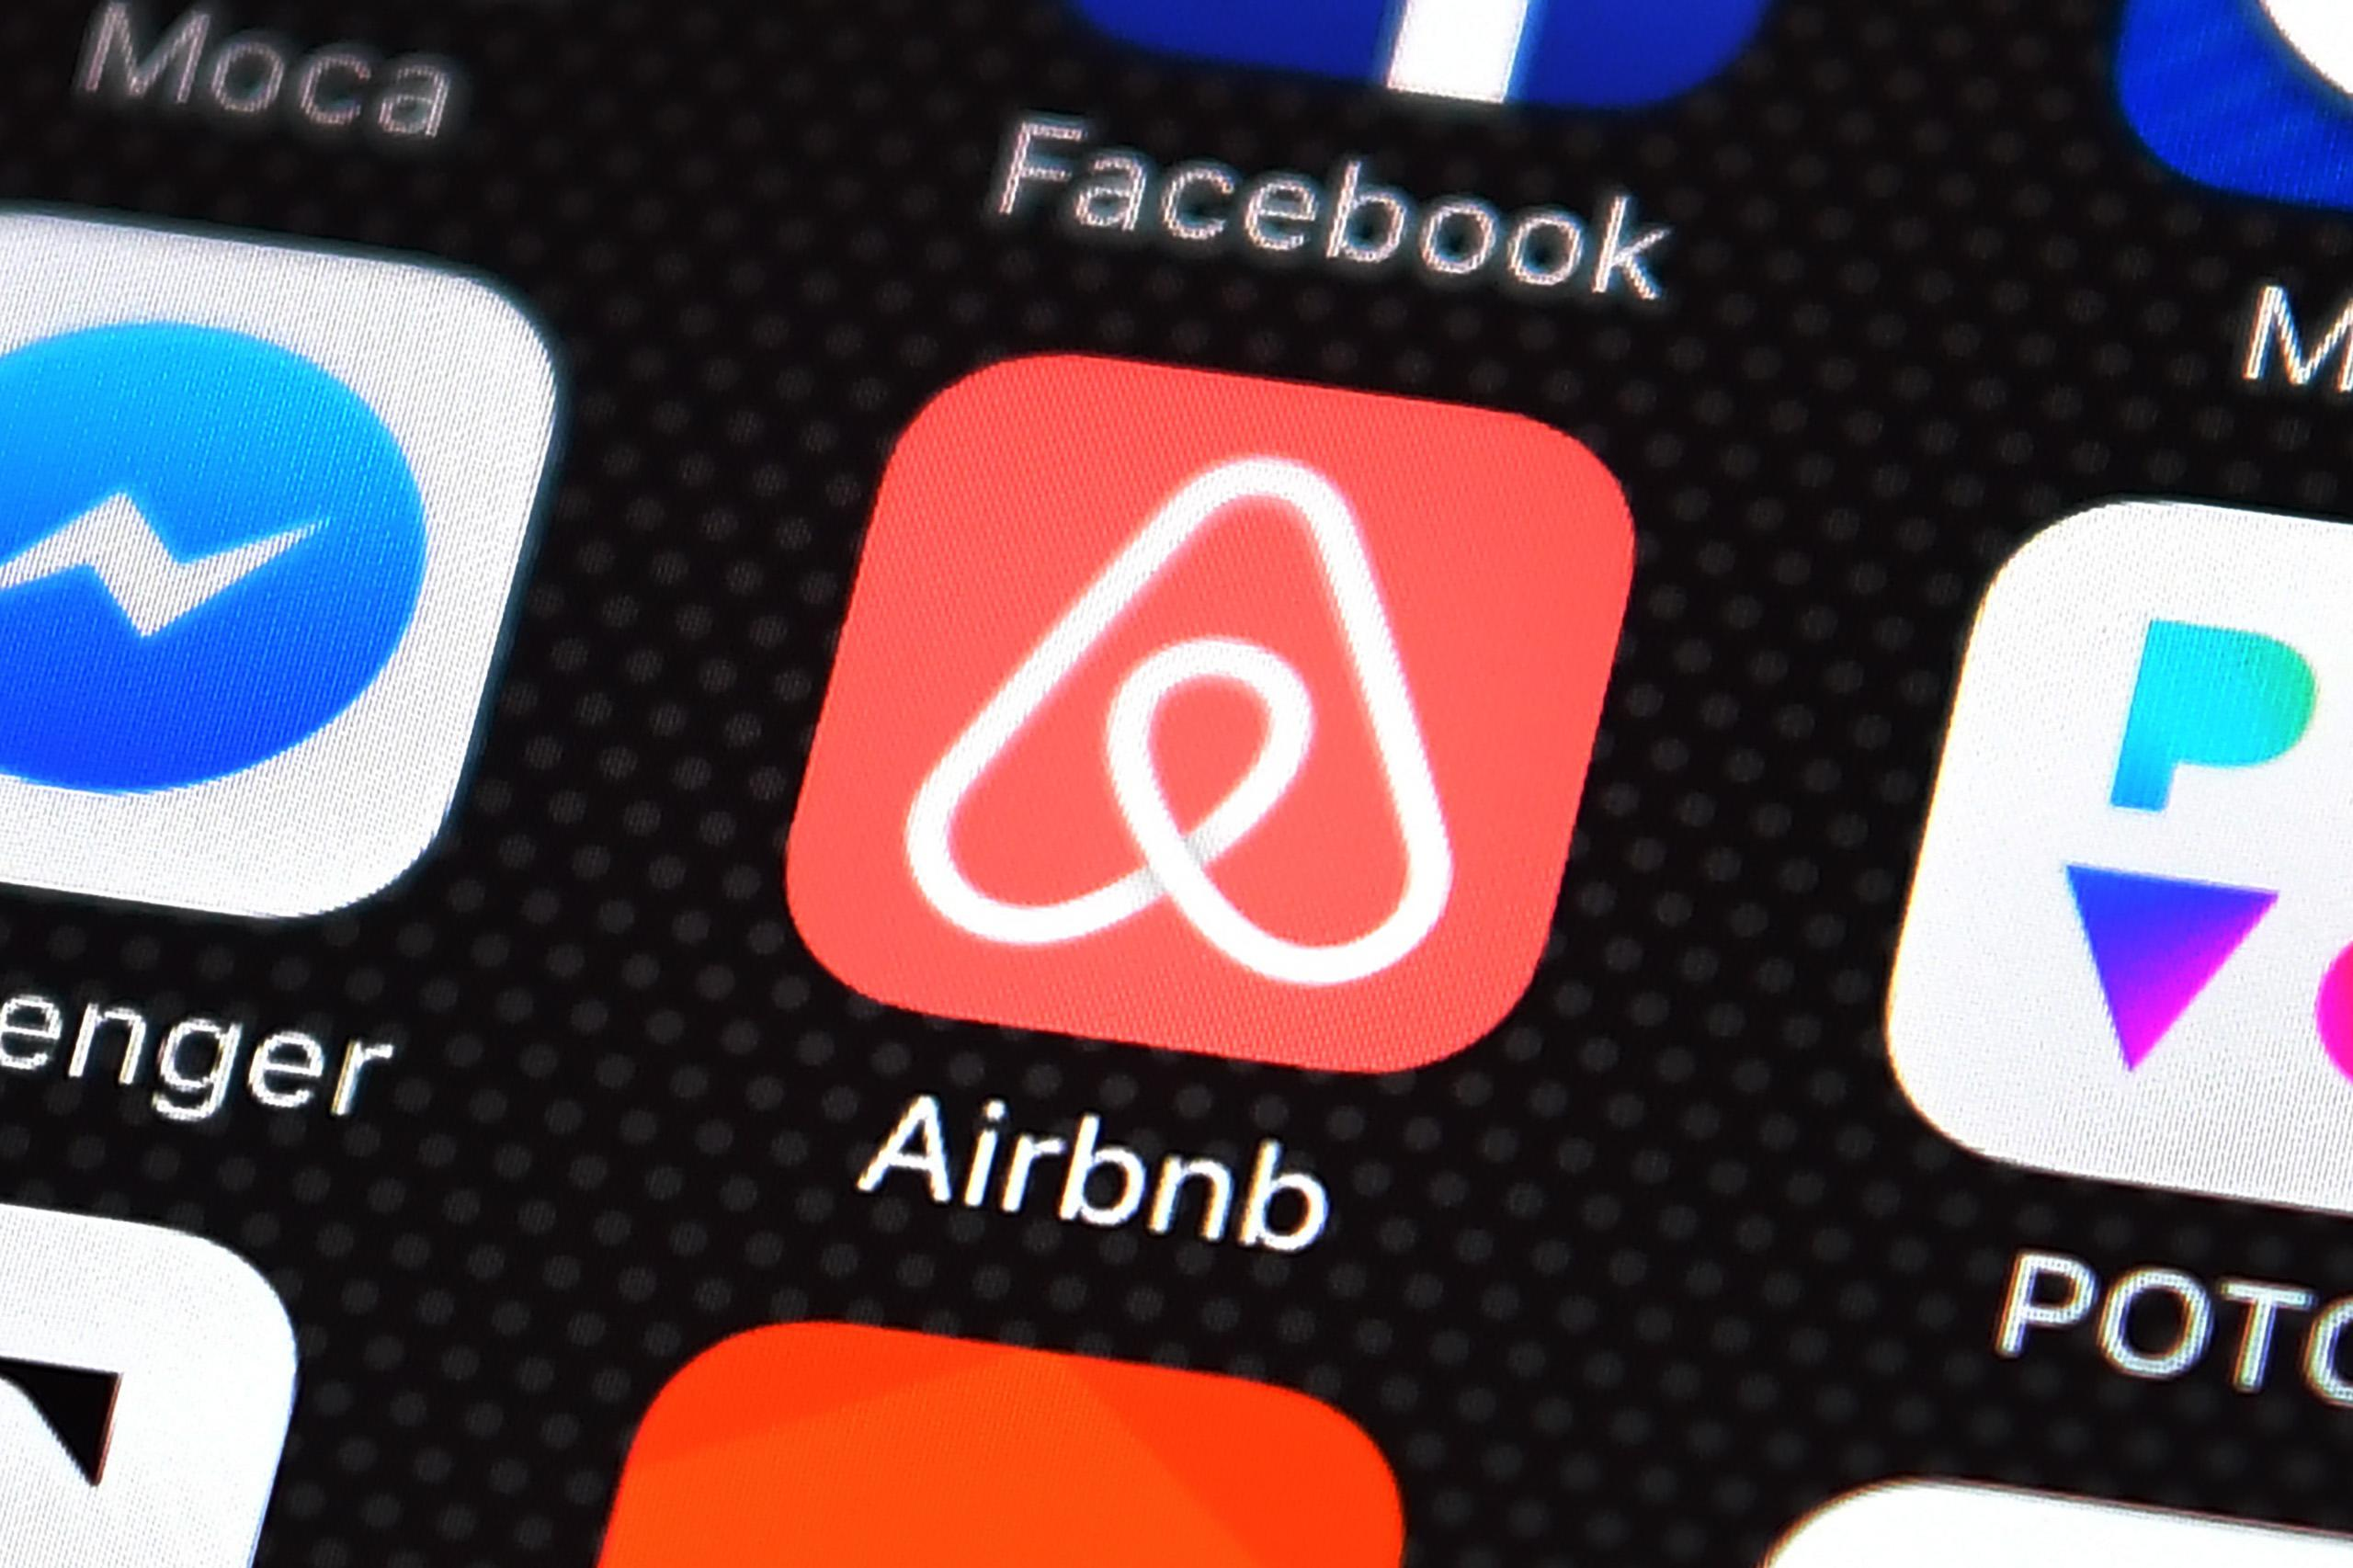 Airbnb is using AI to make travel more personalized [Video]